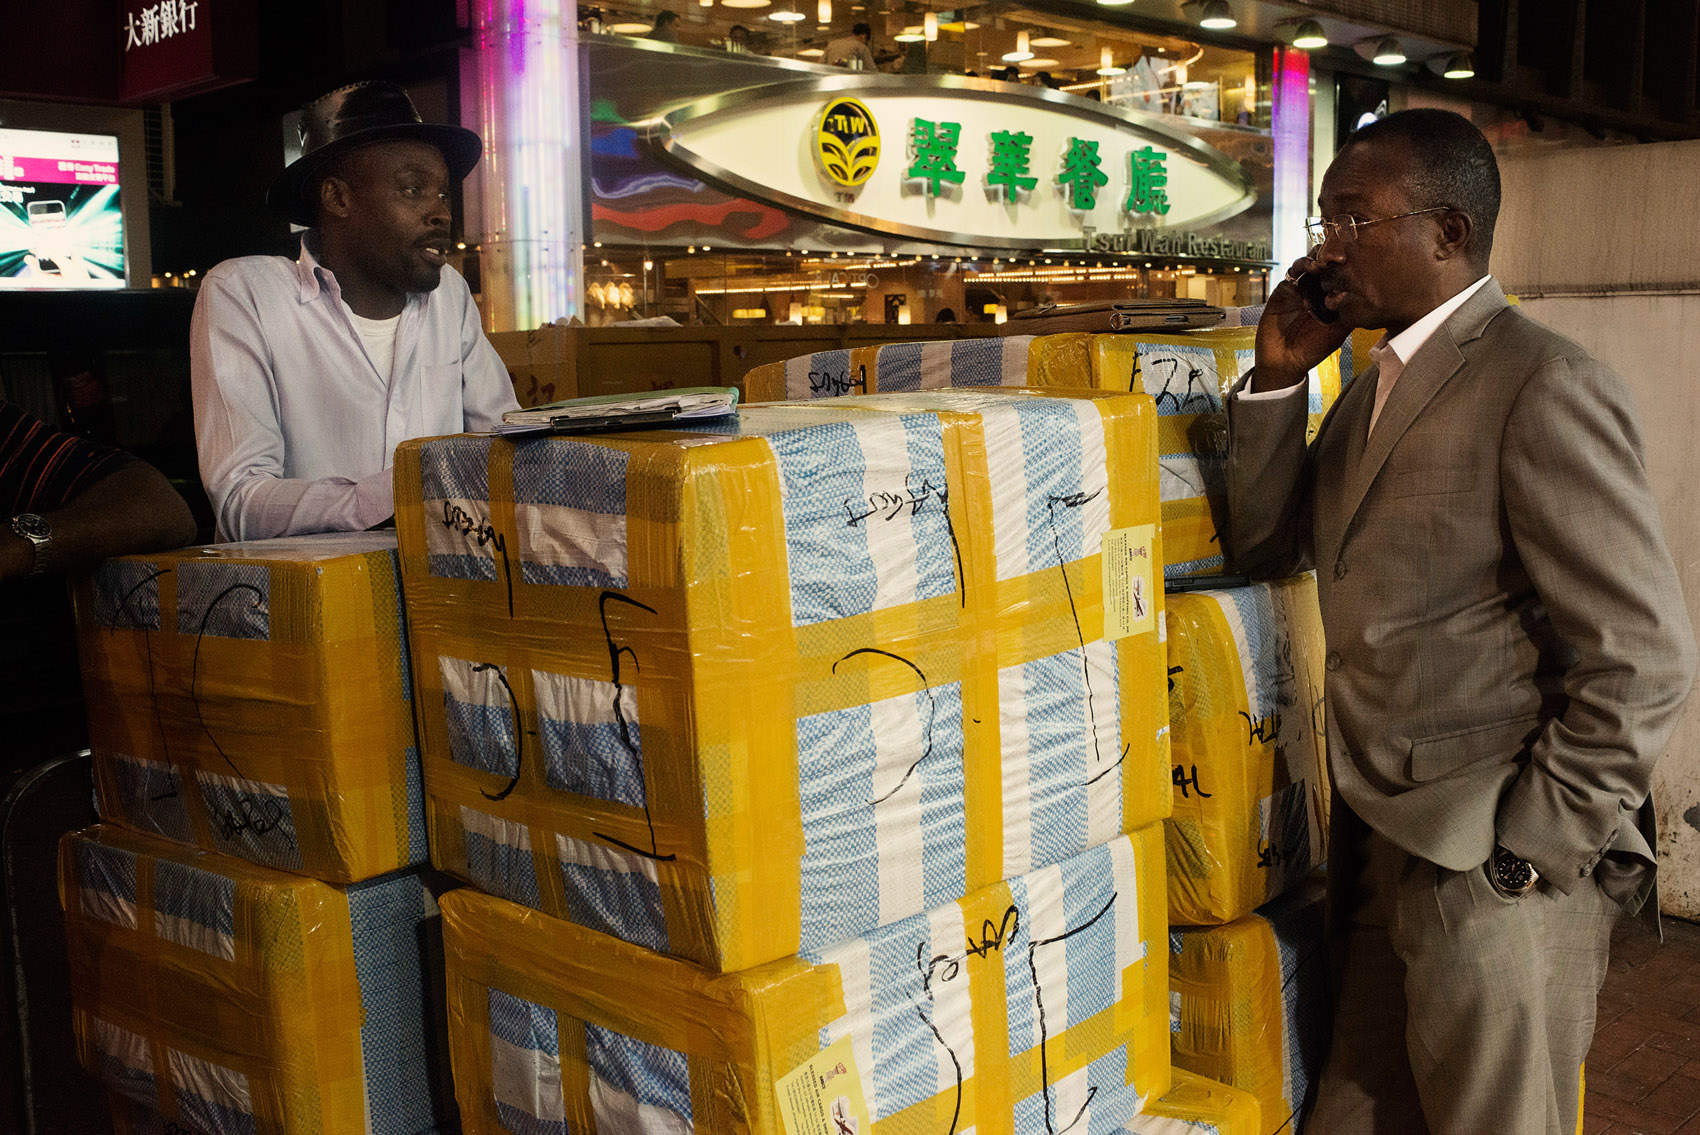 On a side street of the Chungking Mansions, Nigerian traders stand by boxes filled with mobile phones about to be shipped to Lagos. The trade in mobile phones accounts for a a large part of the business conducted in the Chungking Mansions.